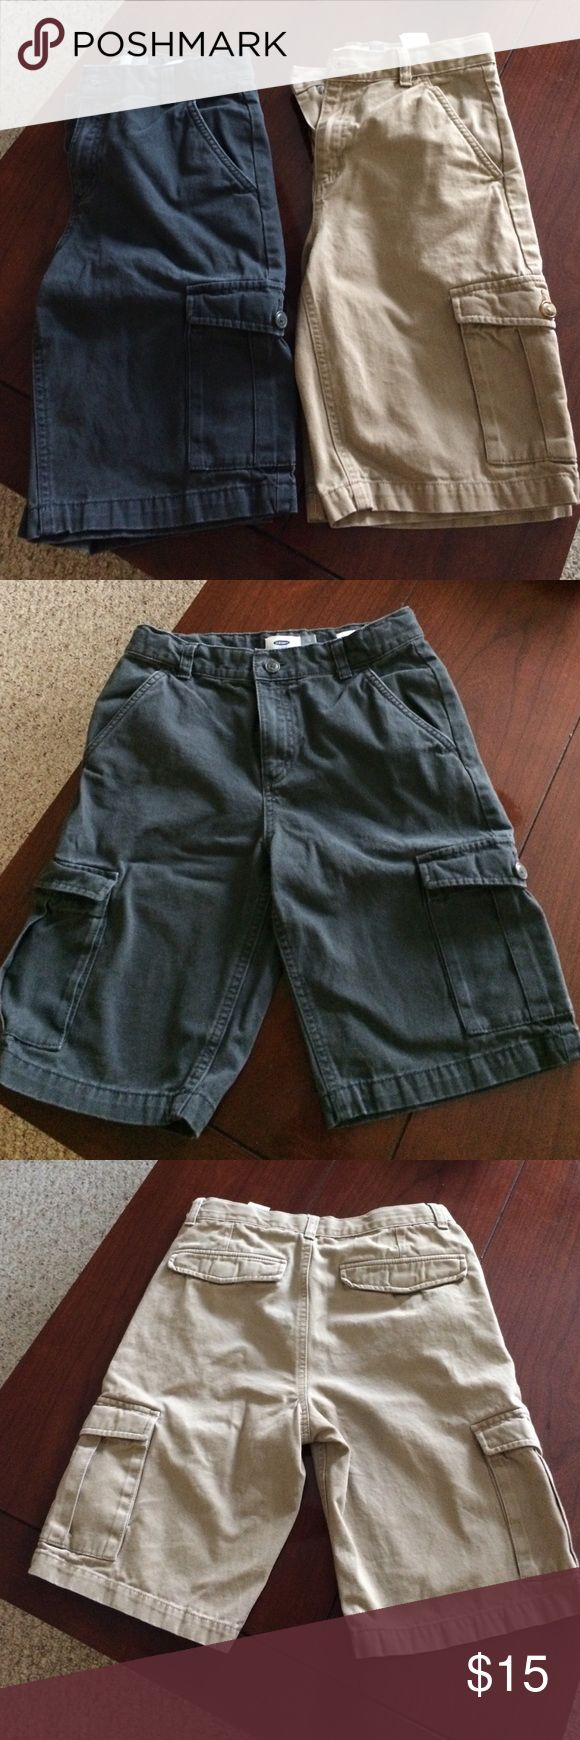 2 Pair of Old Navy Boys Cargo Shorts Gently used. No stains or visible wear Old Navy Bottoms Shorts